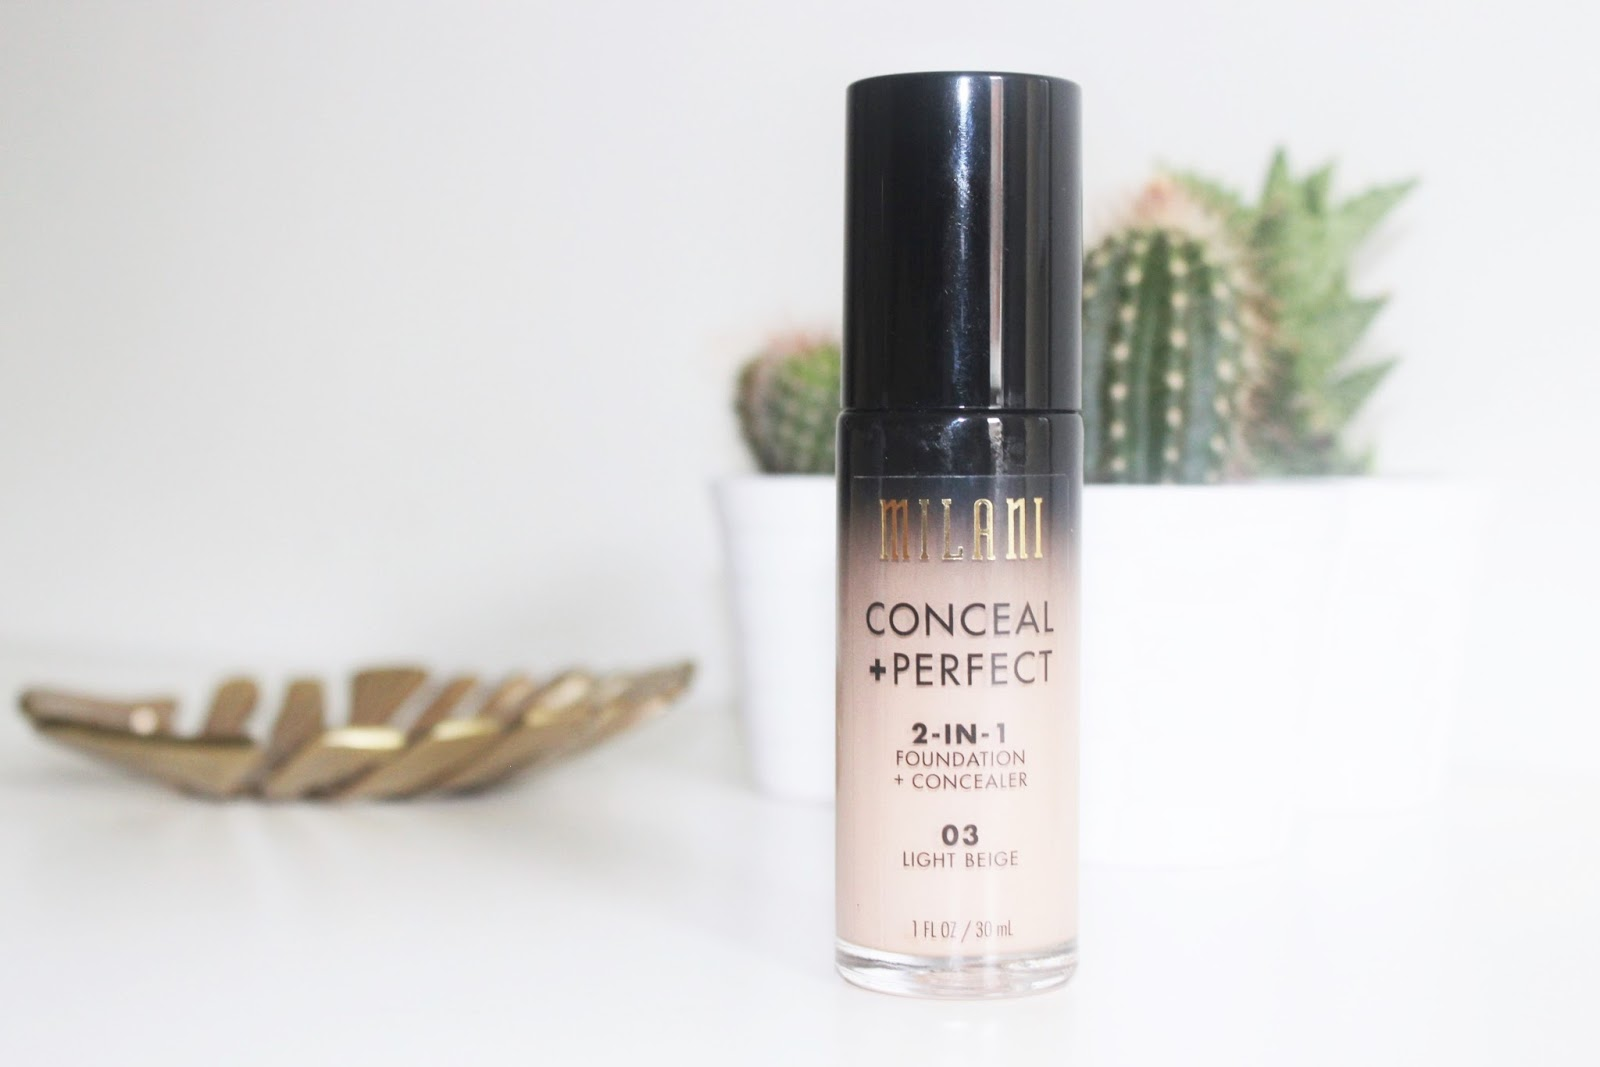 The Milani Conceal Perfect Foundation